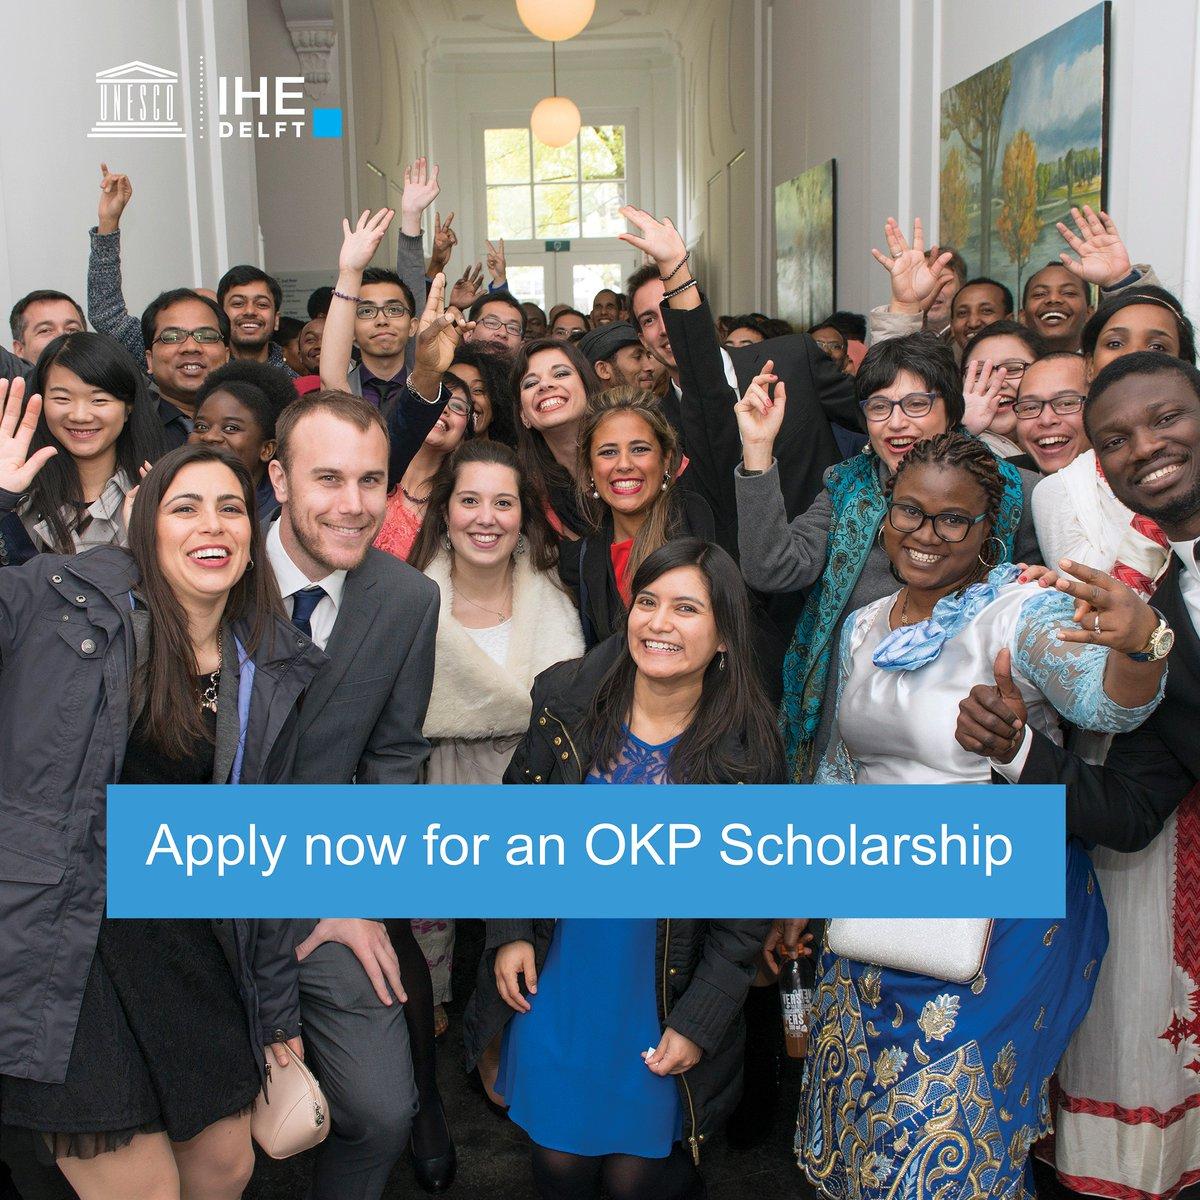 IHE DELFT Orange Understanding Scholarship Program 2019 for water Experts